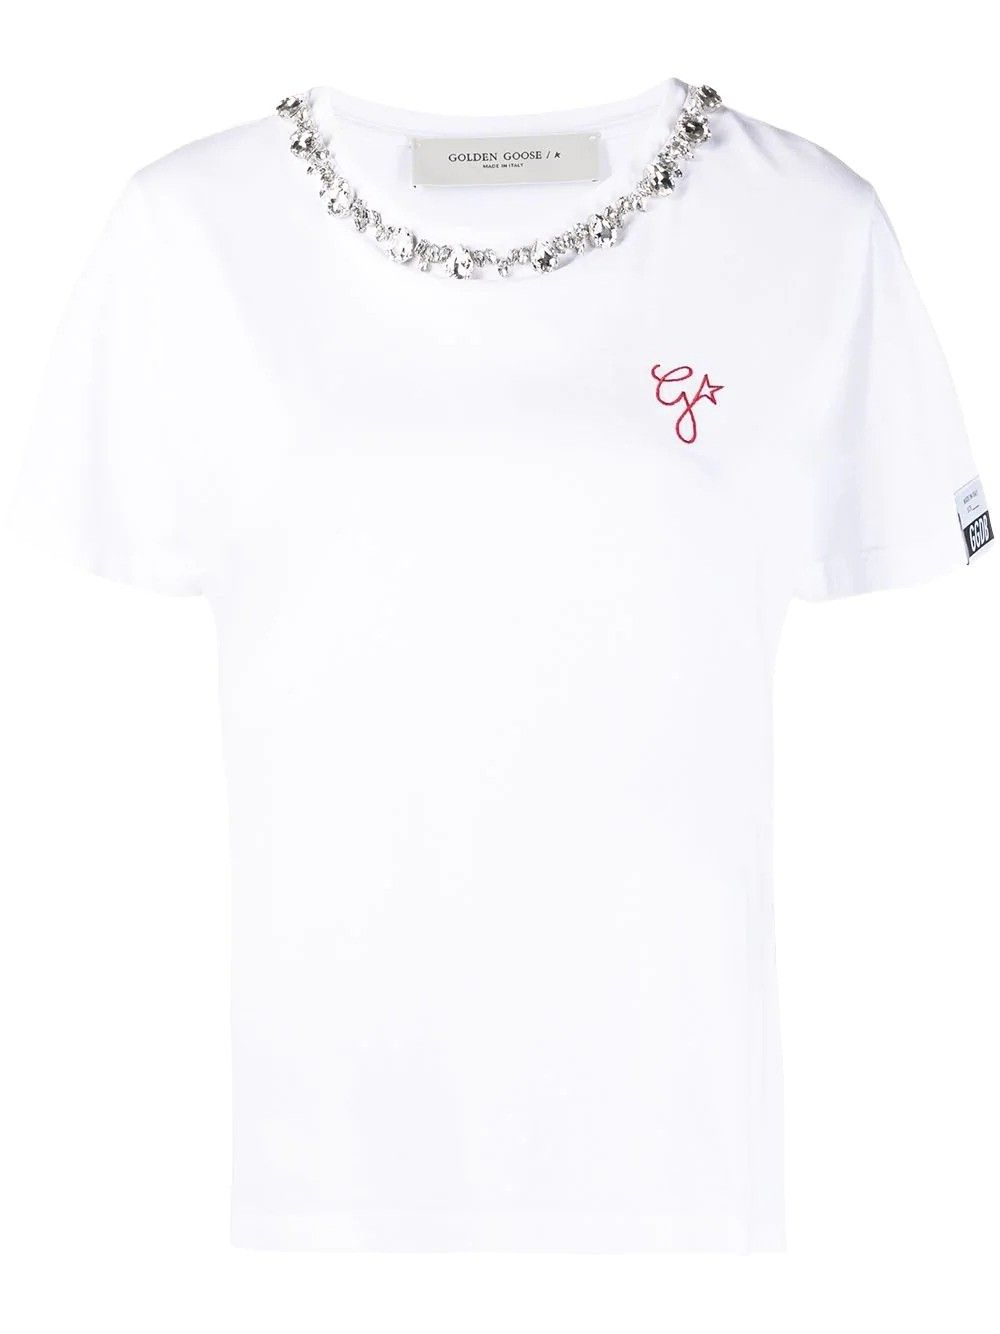 Golden Goose GOLDEN GOOSE WOMEN'S WHITE COTTON T-SHIRT